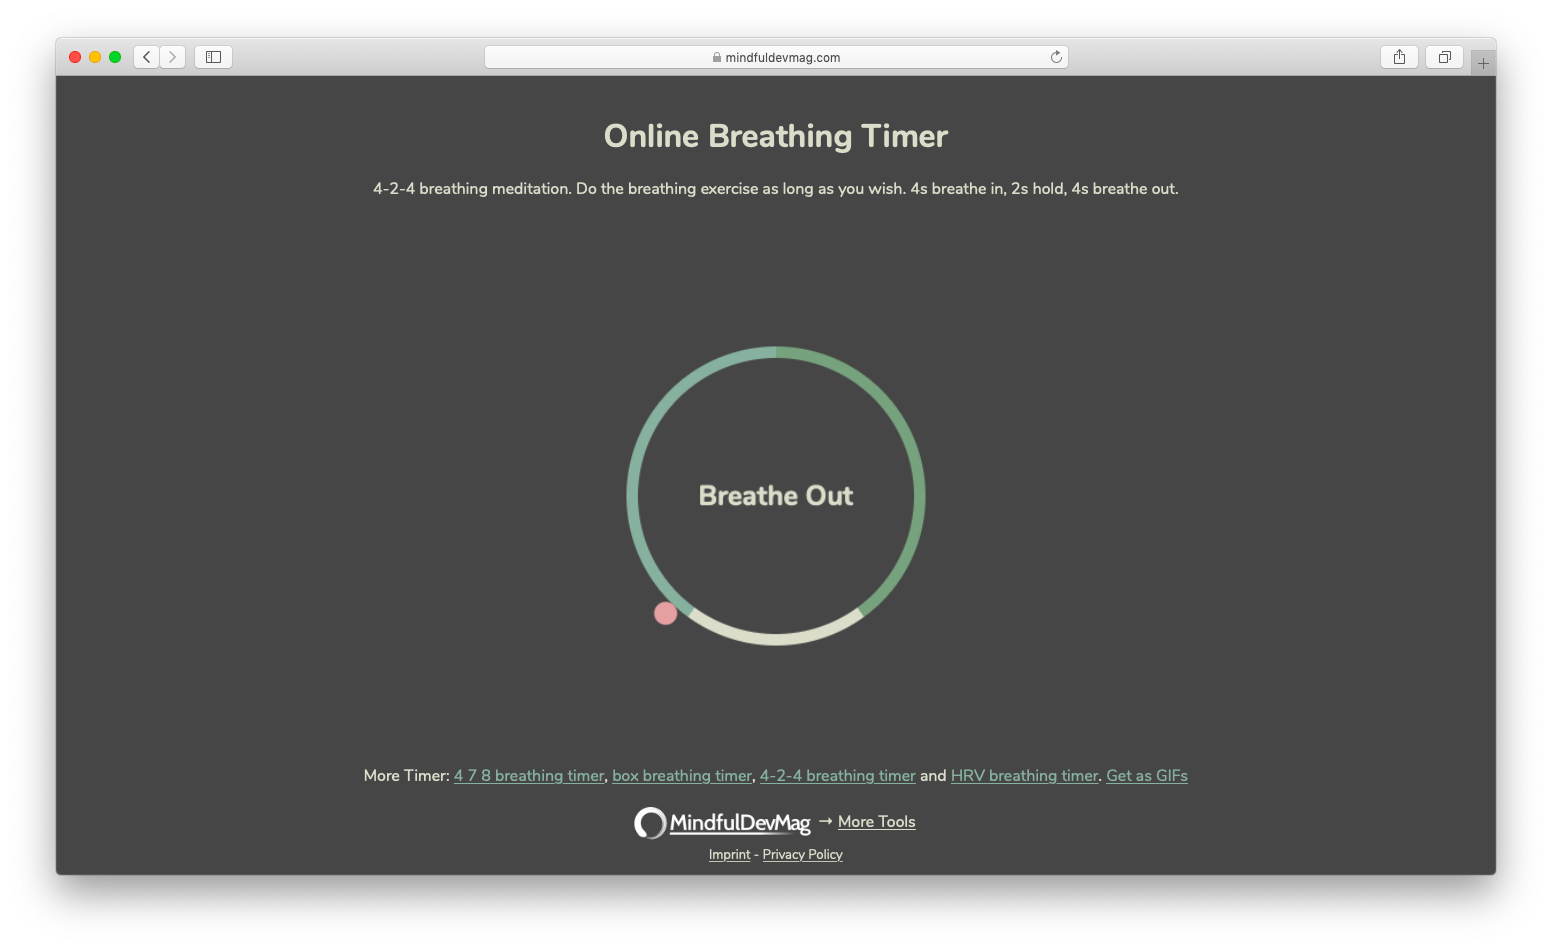 screenshot of the online breathing timer